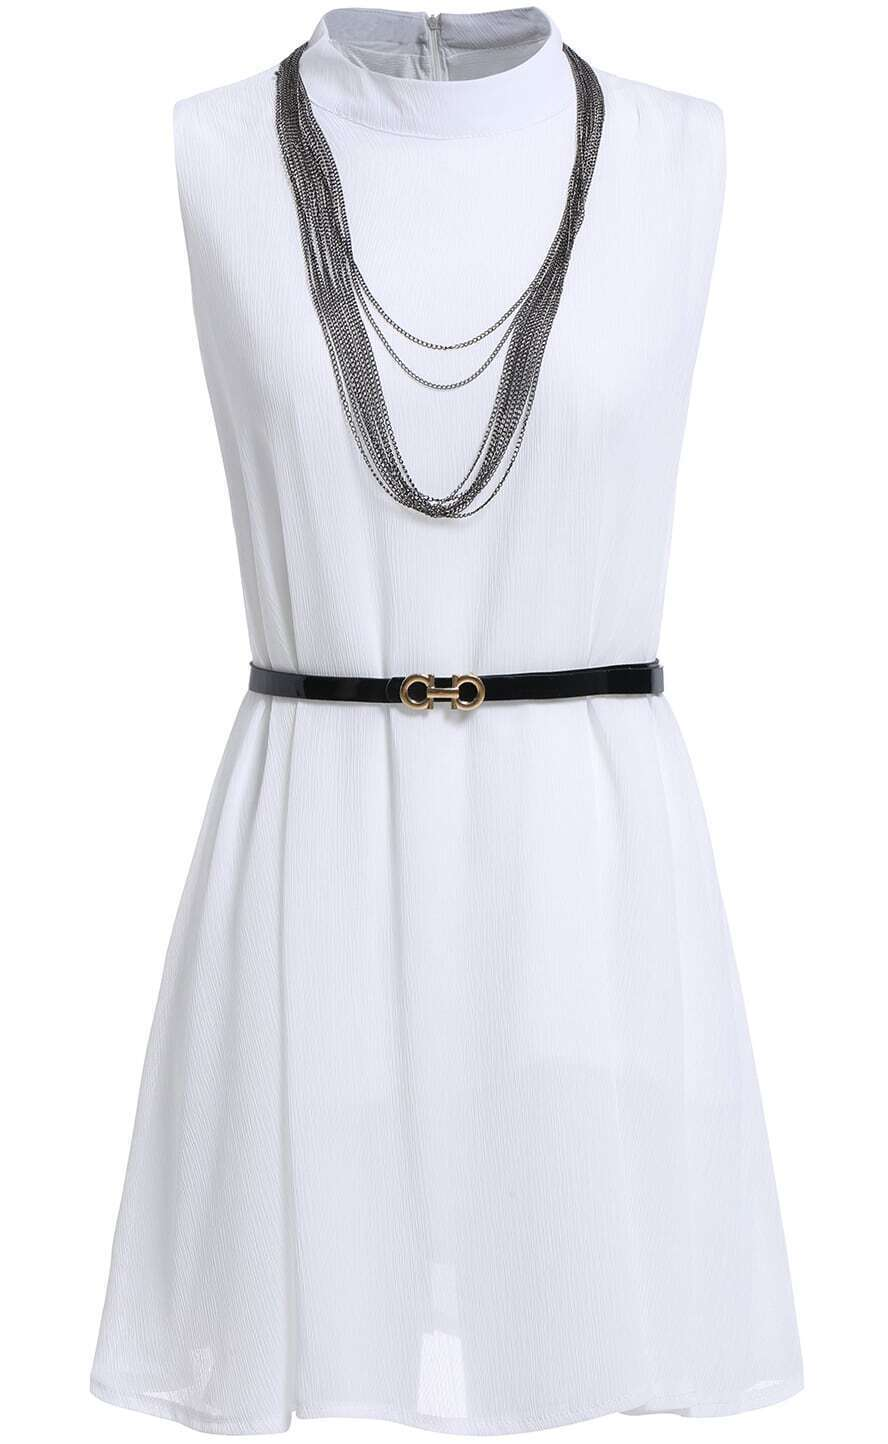 white stand collar chain embellished dress with belt